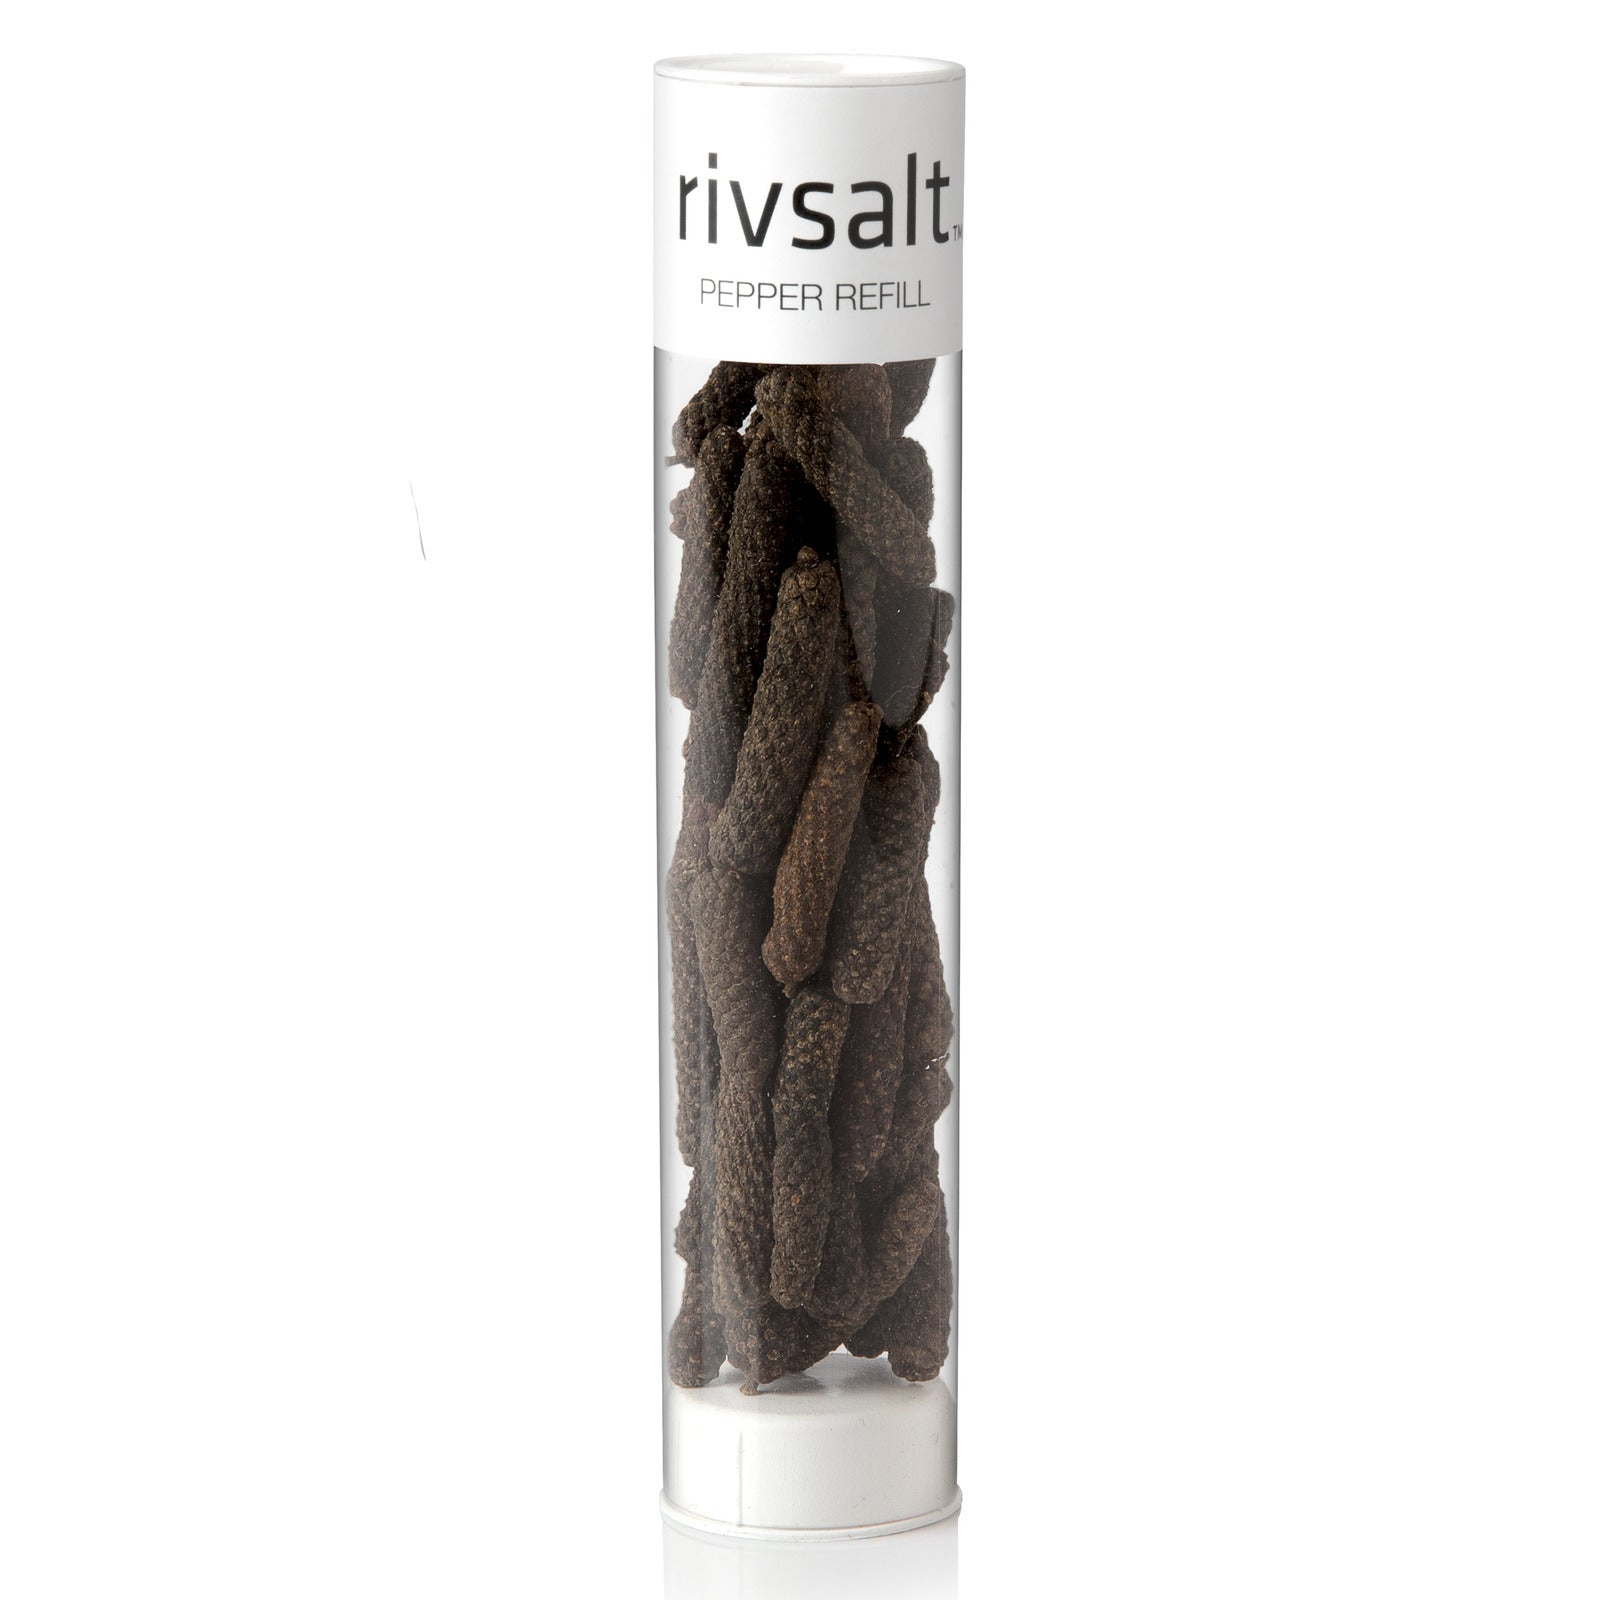 Rivsalt Pepper refill - Long pepper